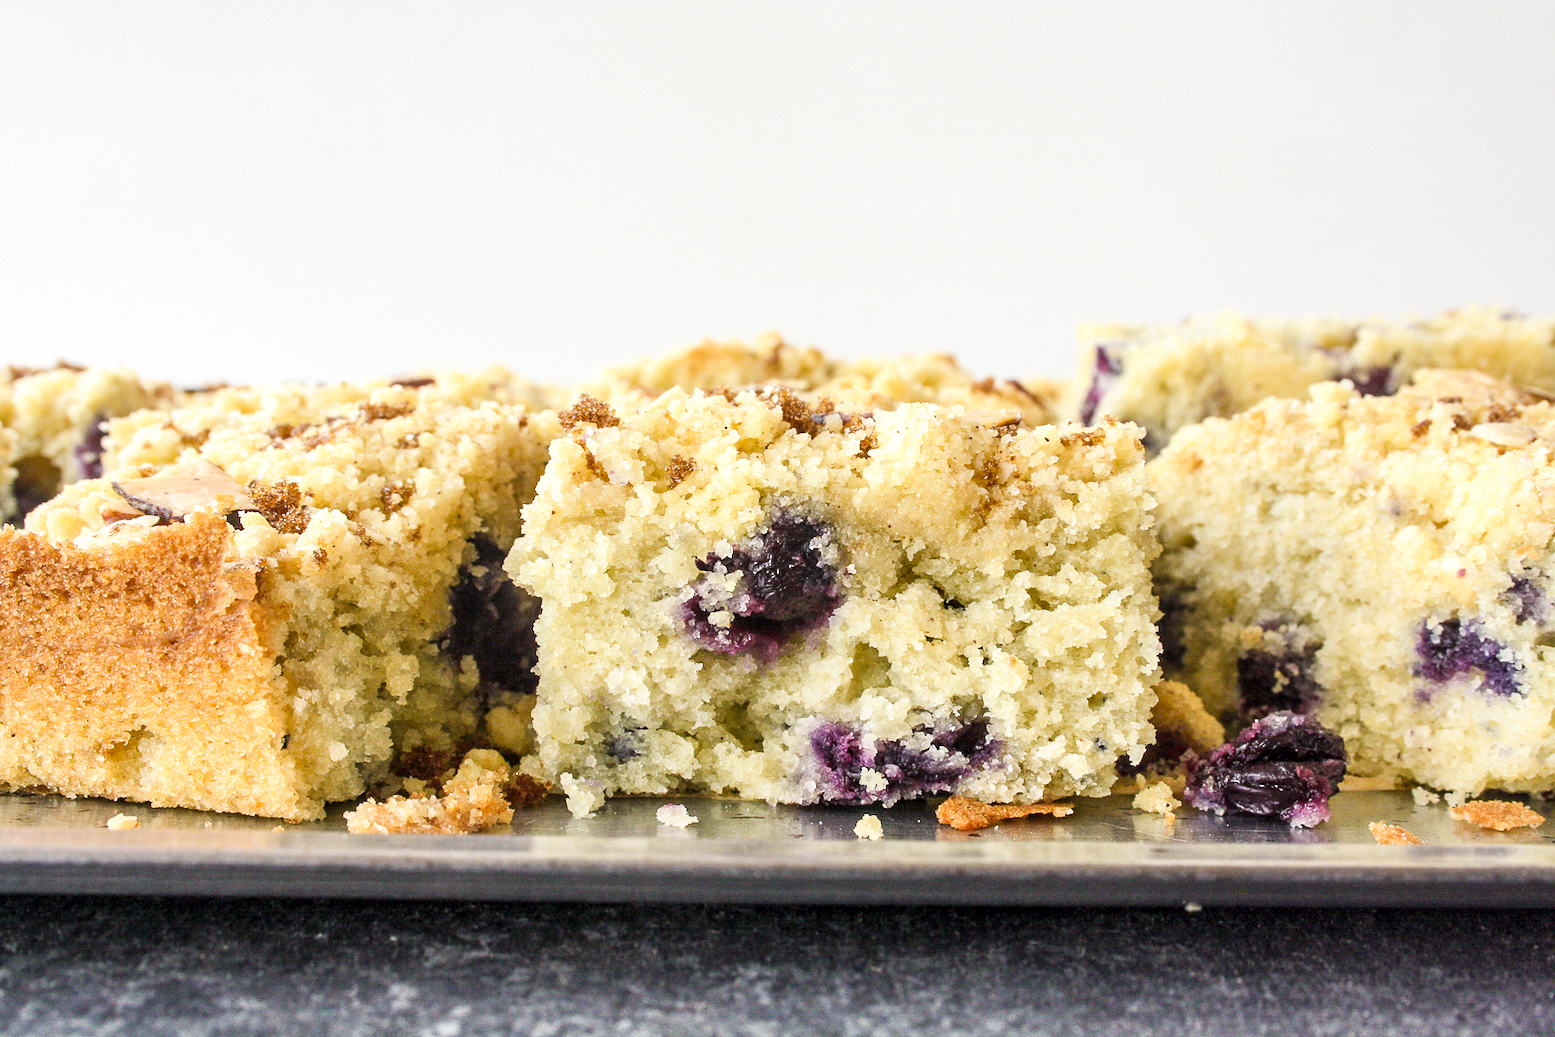 A buttery, moist blueberry cake made with cornmeal and a crunchy streusel topping!